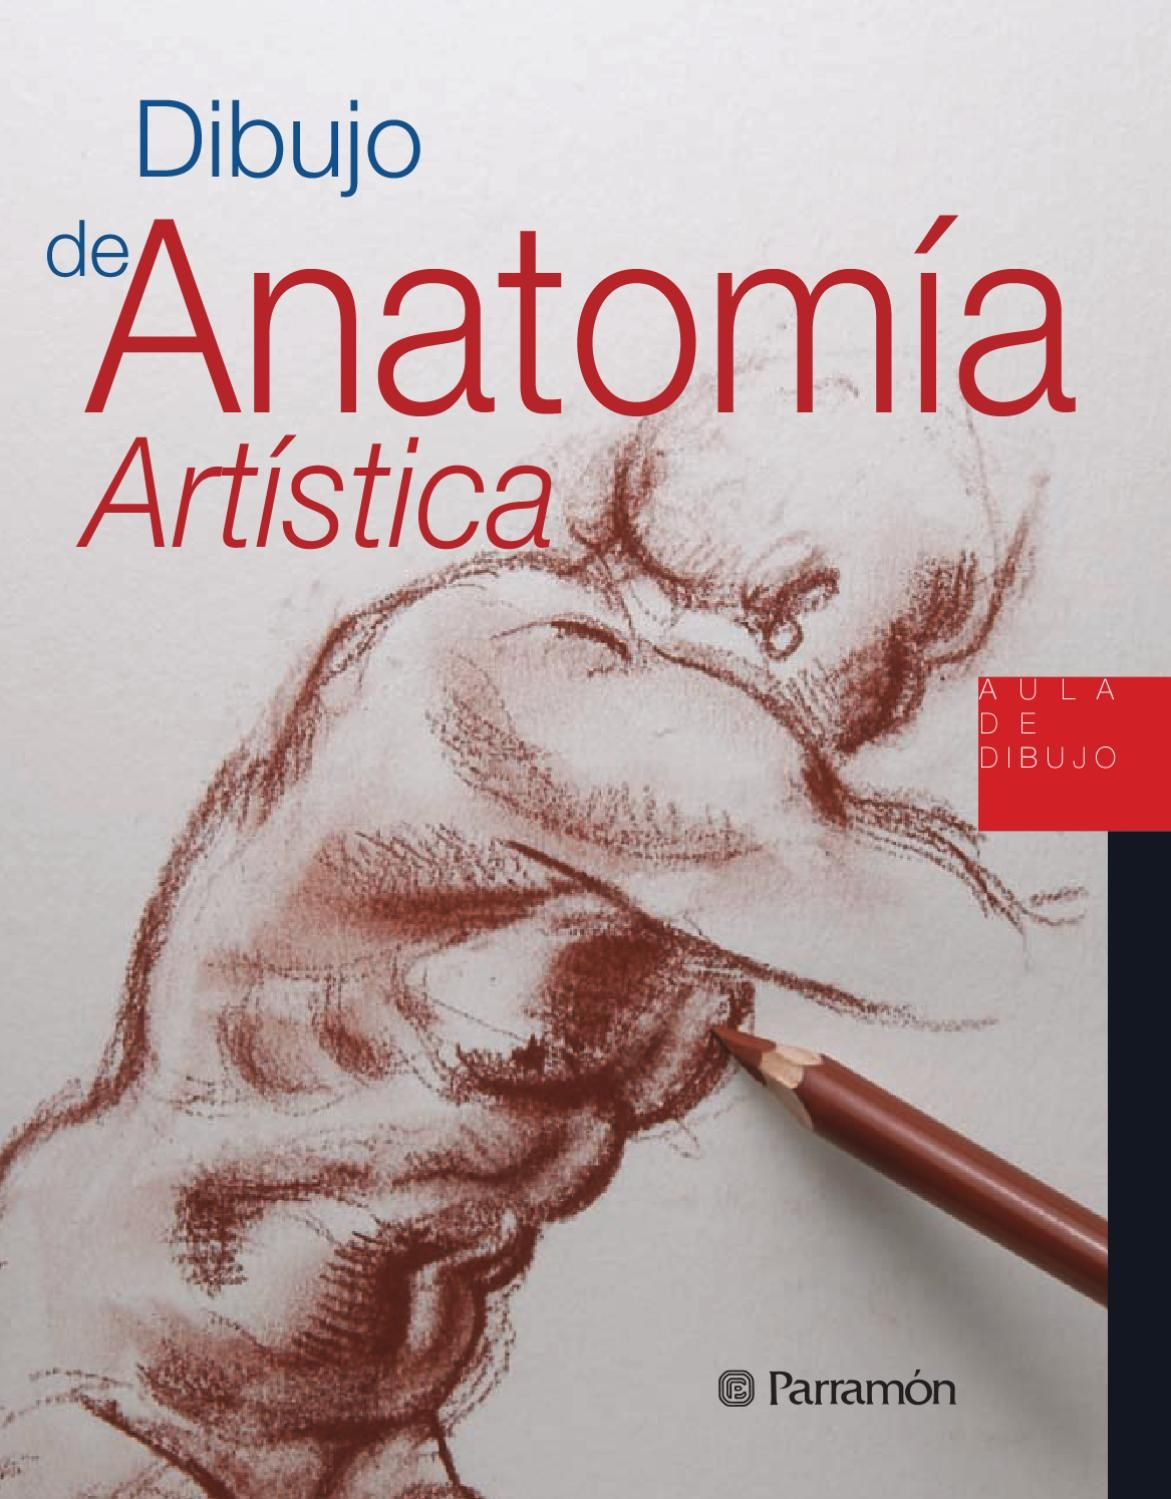 Drawing Class Drawing The Human Anatomy Libro De Dibujo Libros De Dibujo Pdf Clases De Dibujo